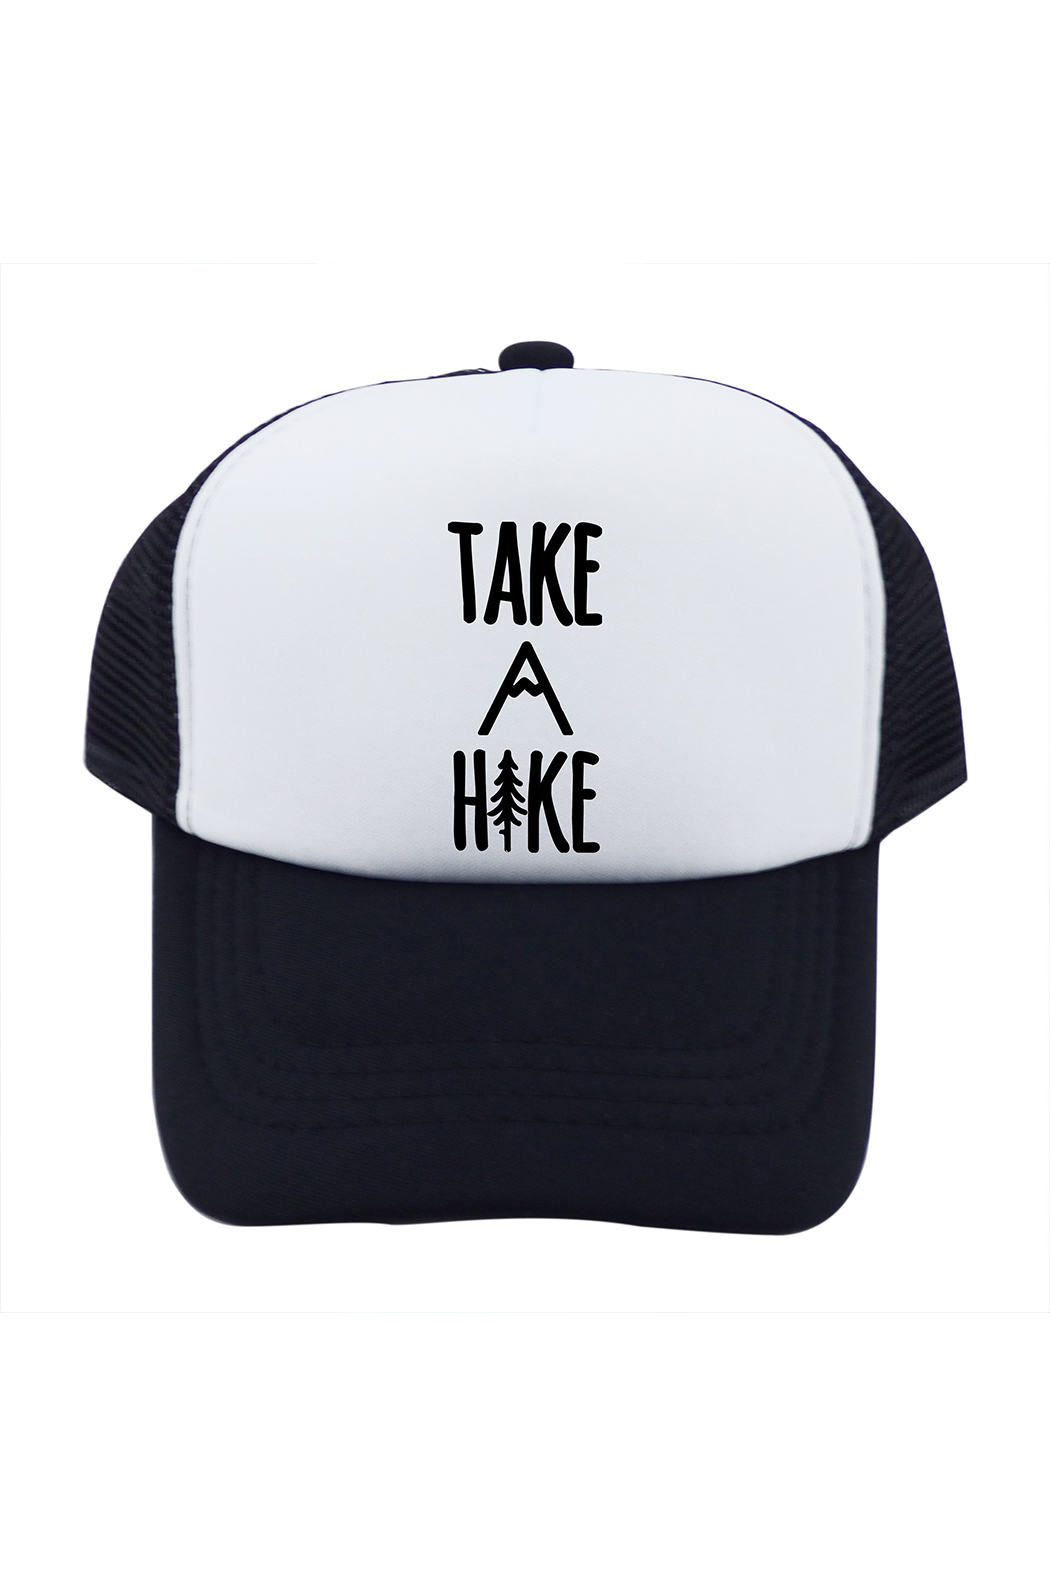 Outdoorable Apparel Take A Hike Hat - Black - Main Image